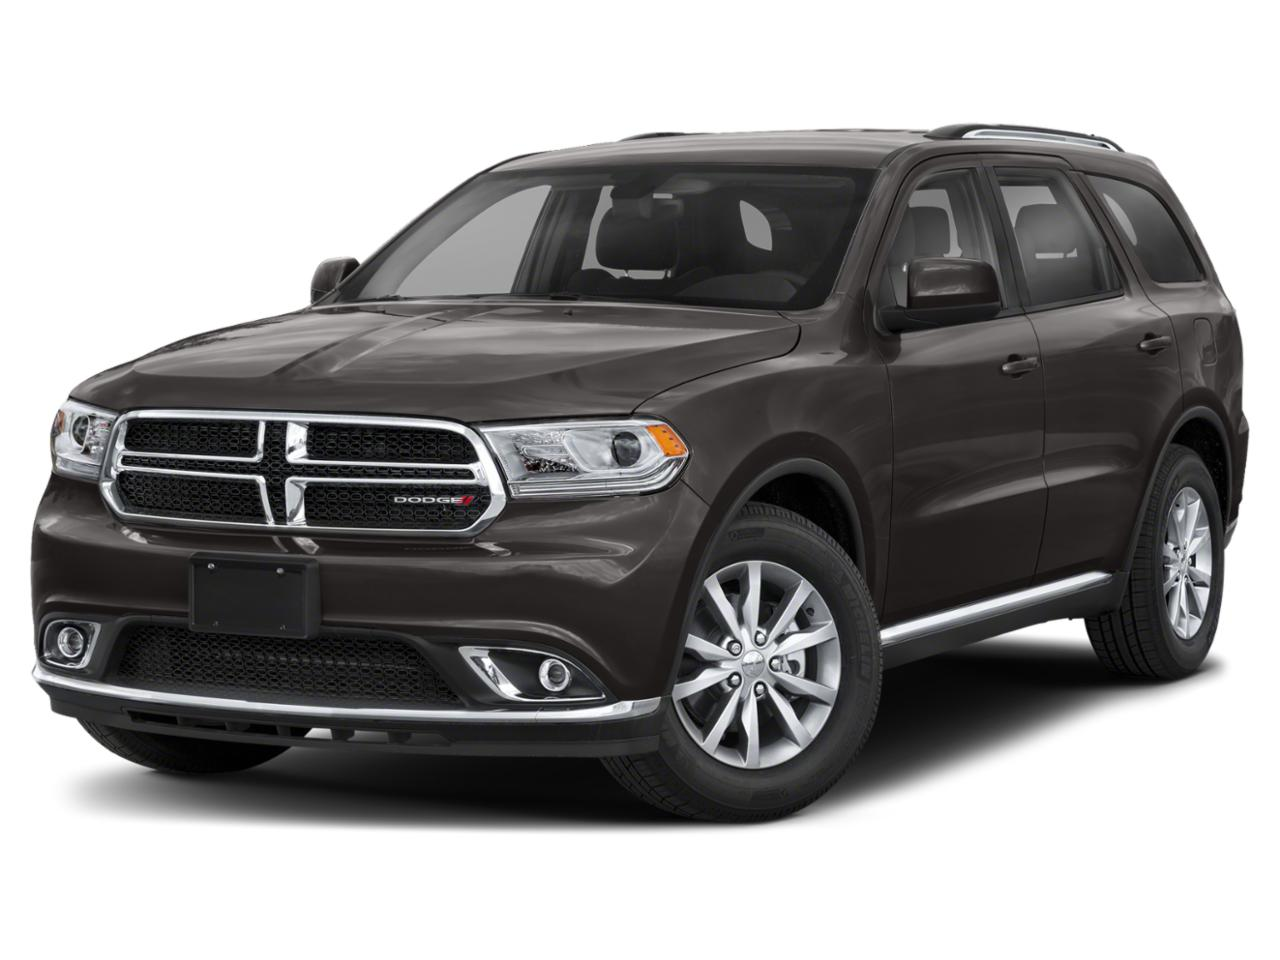 2018 Dodge Durango Vehicle Photo in Pawling, NY 12564-3219